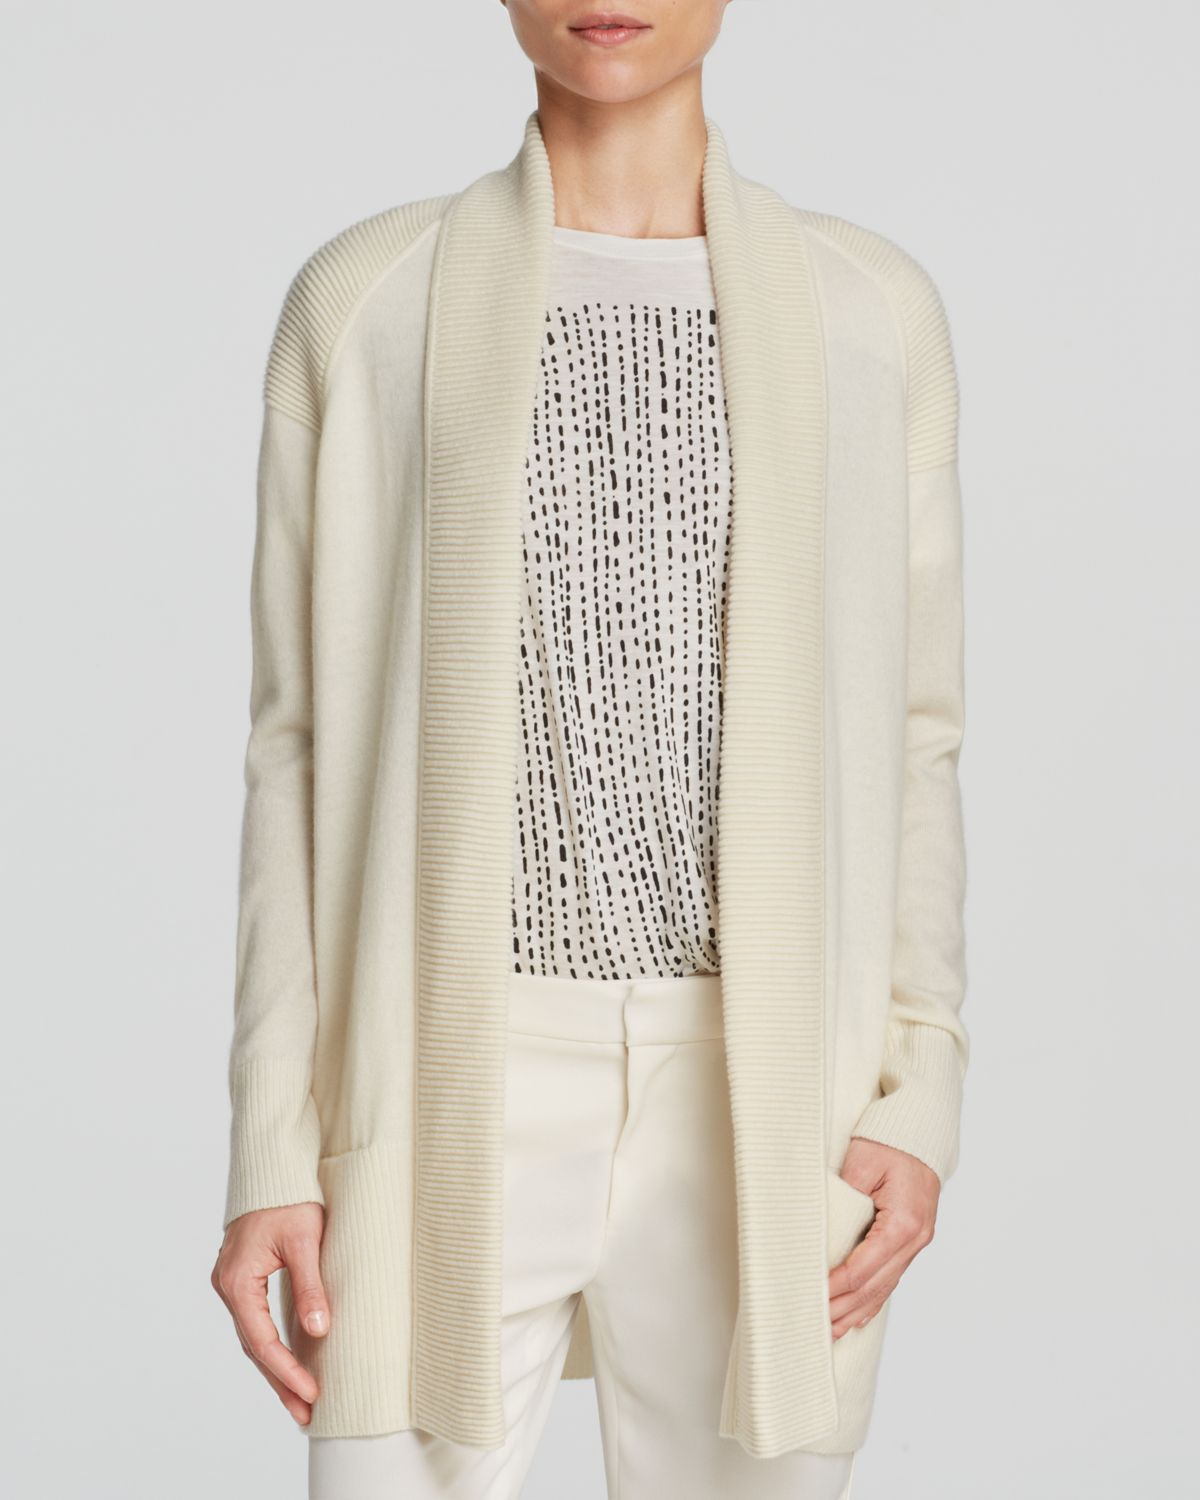 Vince Cardigan - Shawl Collar Wool Cashmere in White | Lyst